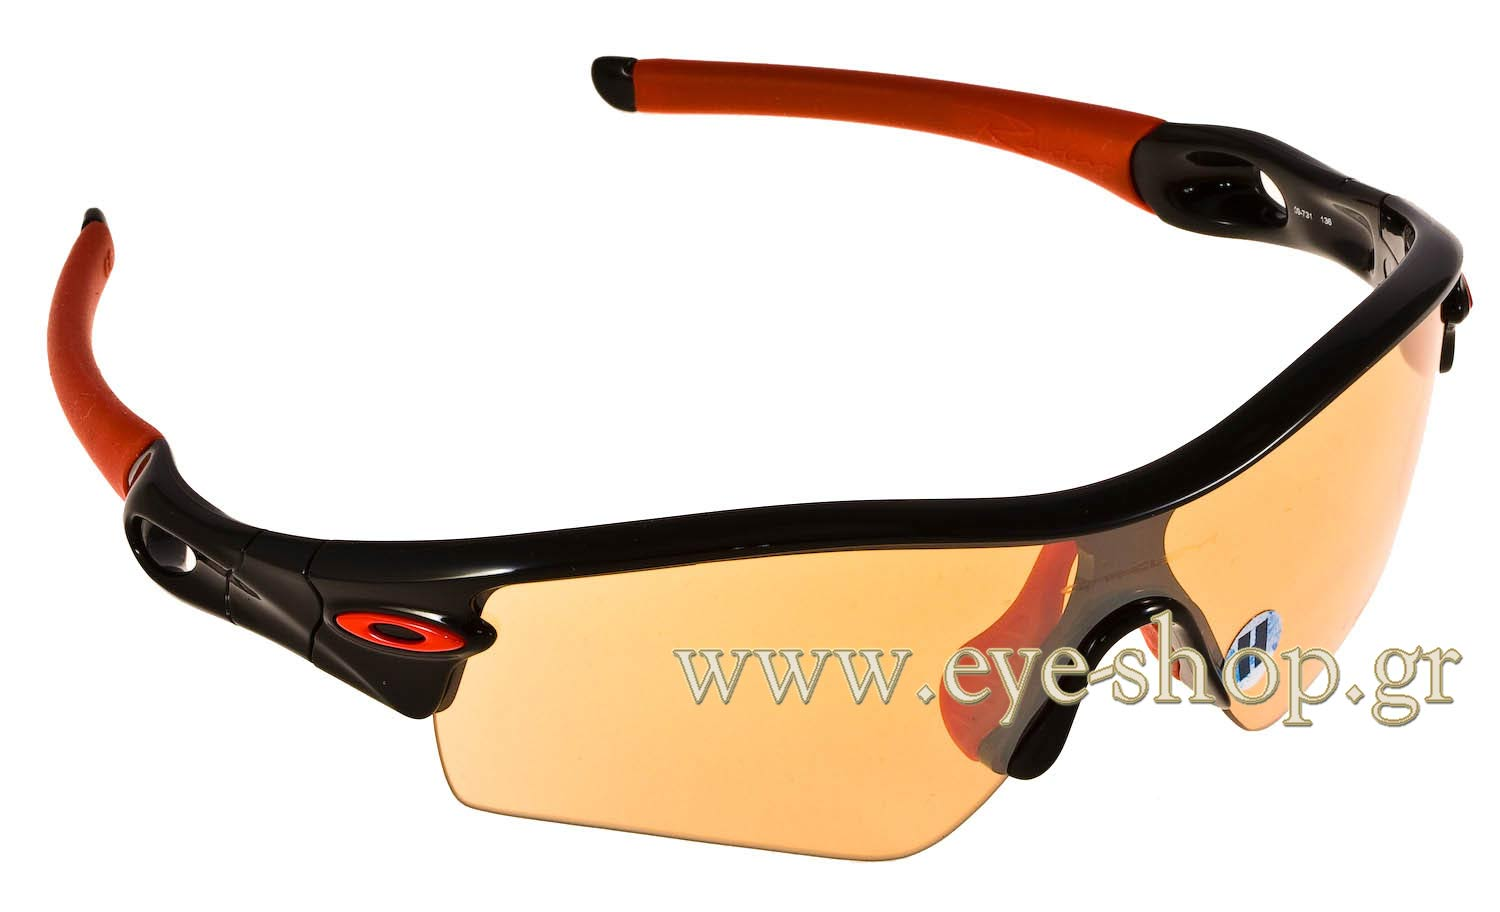 cb17369bcfc5 Oakley Shooting Glasses Ebay